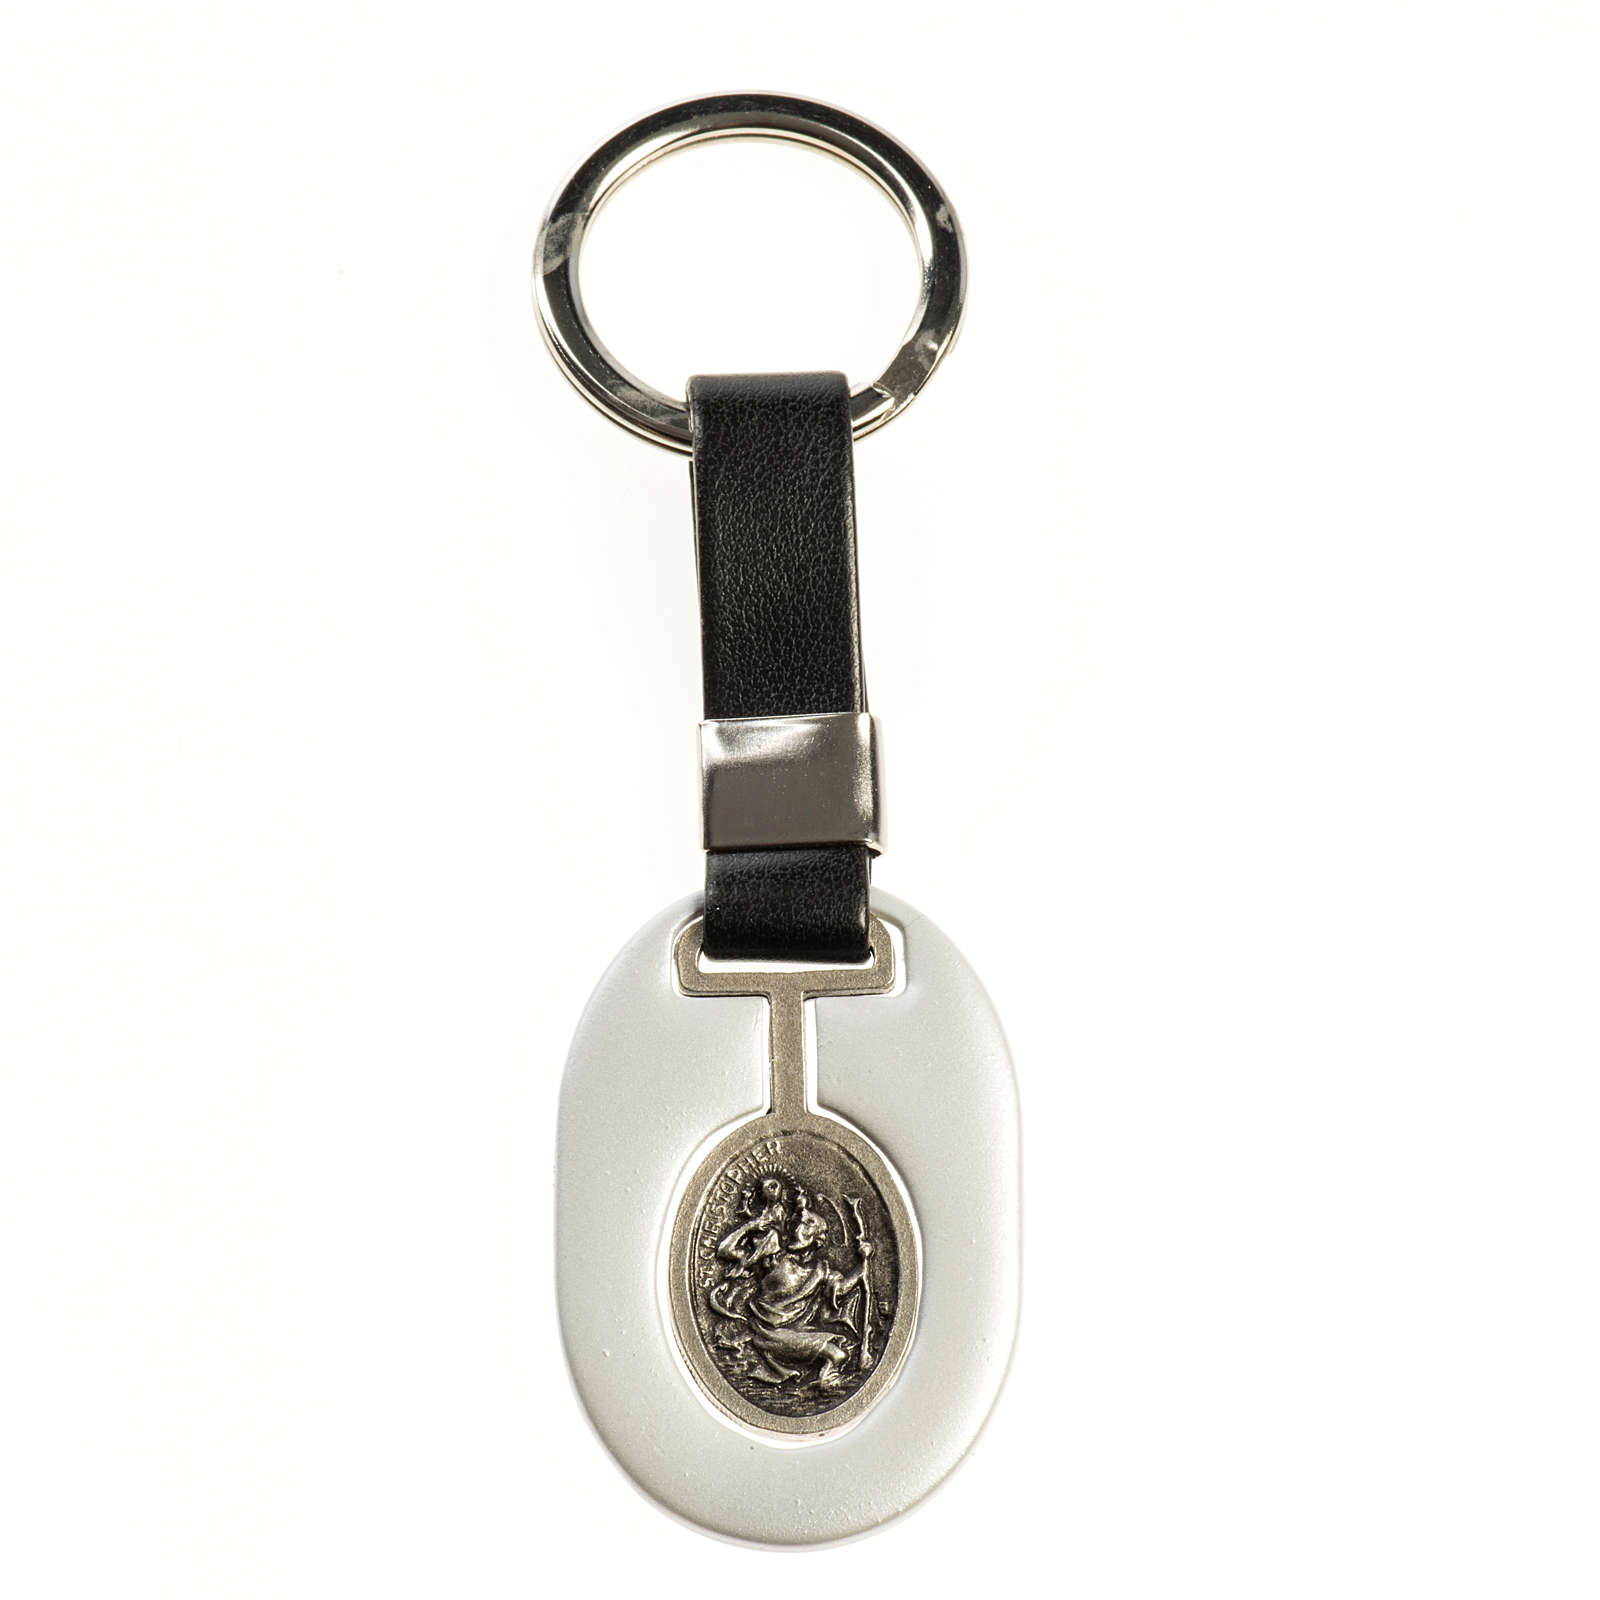 Saint Christopher keychain in grey zamak and fake leather 3